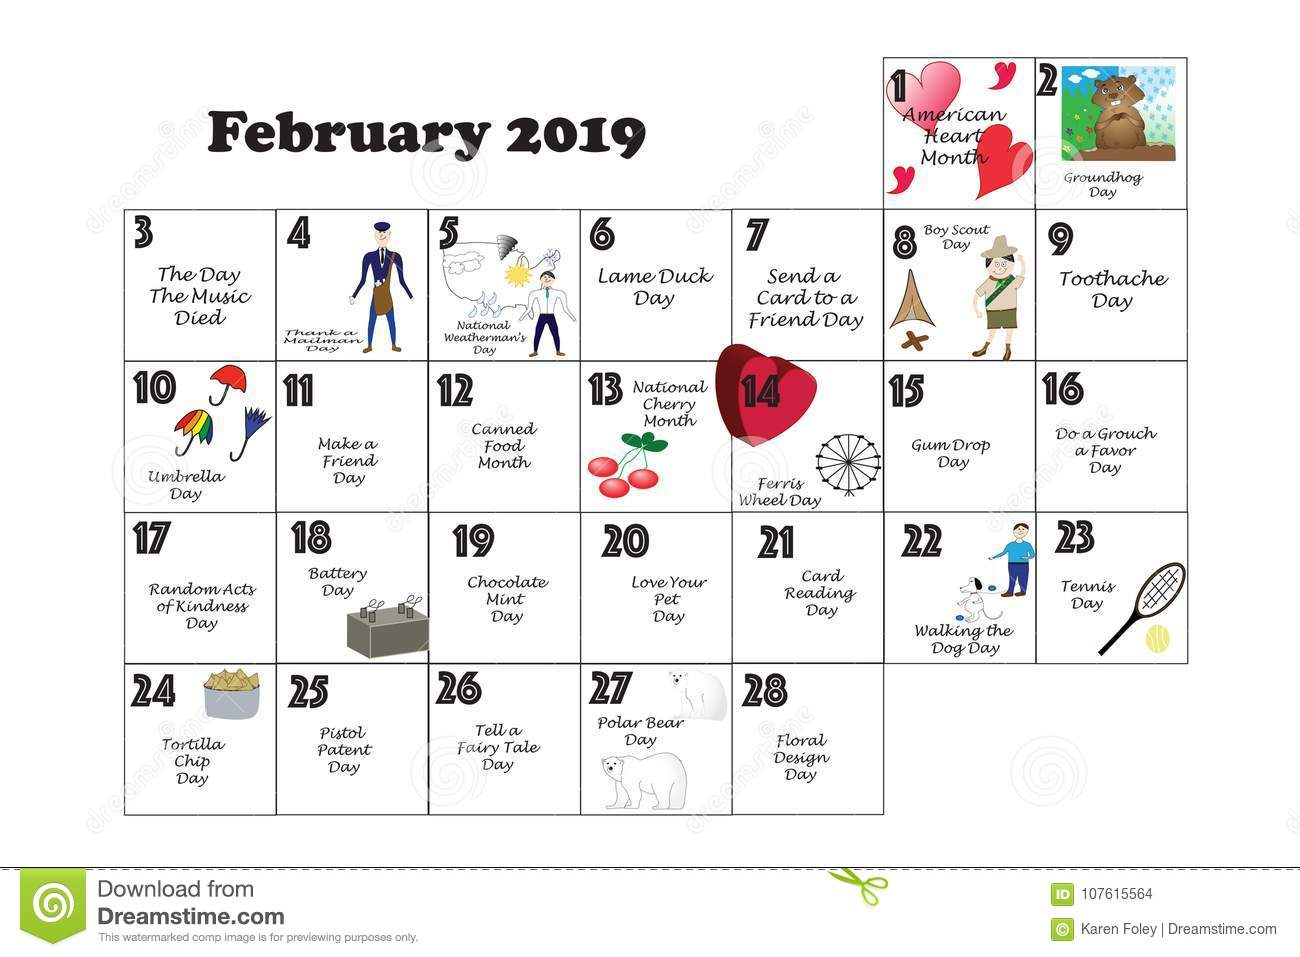 February Quirky Holidays And Unusual Events 2019 Stock Illustration